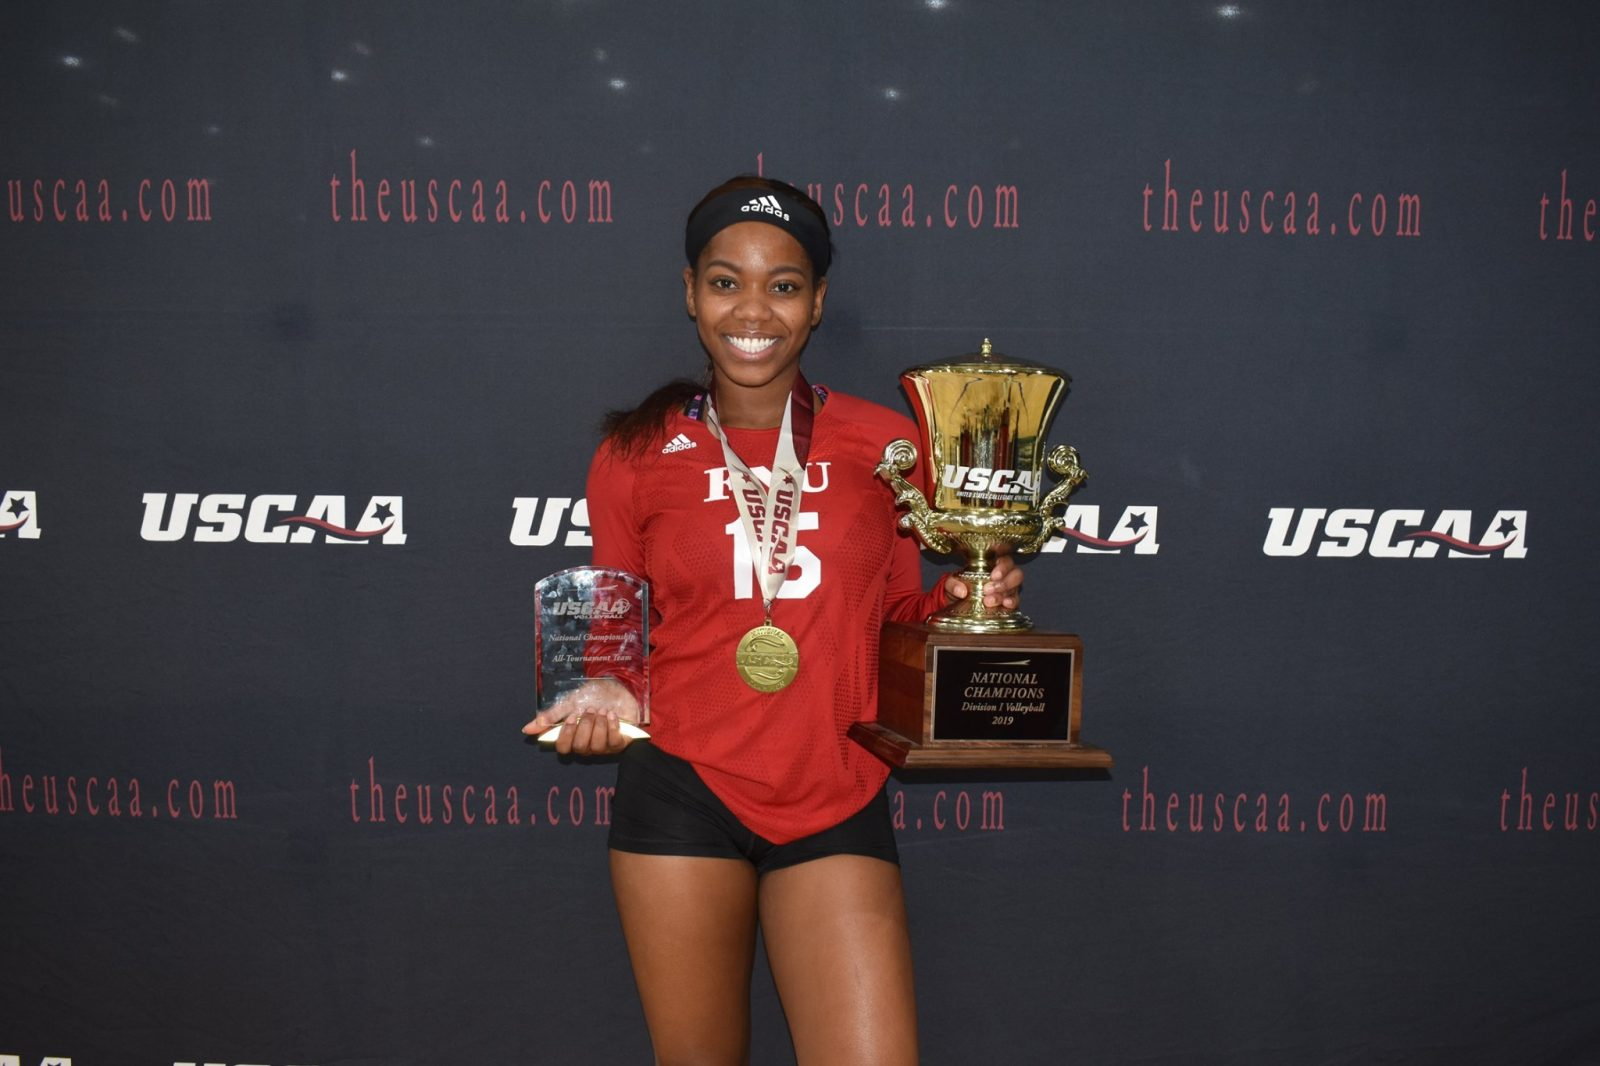 Ashley Williams Volleyball player with the awards received